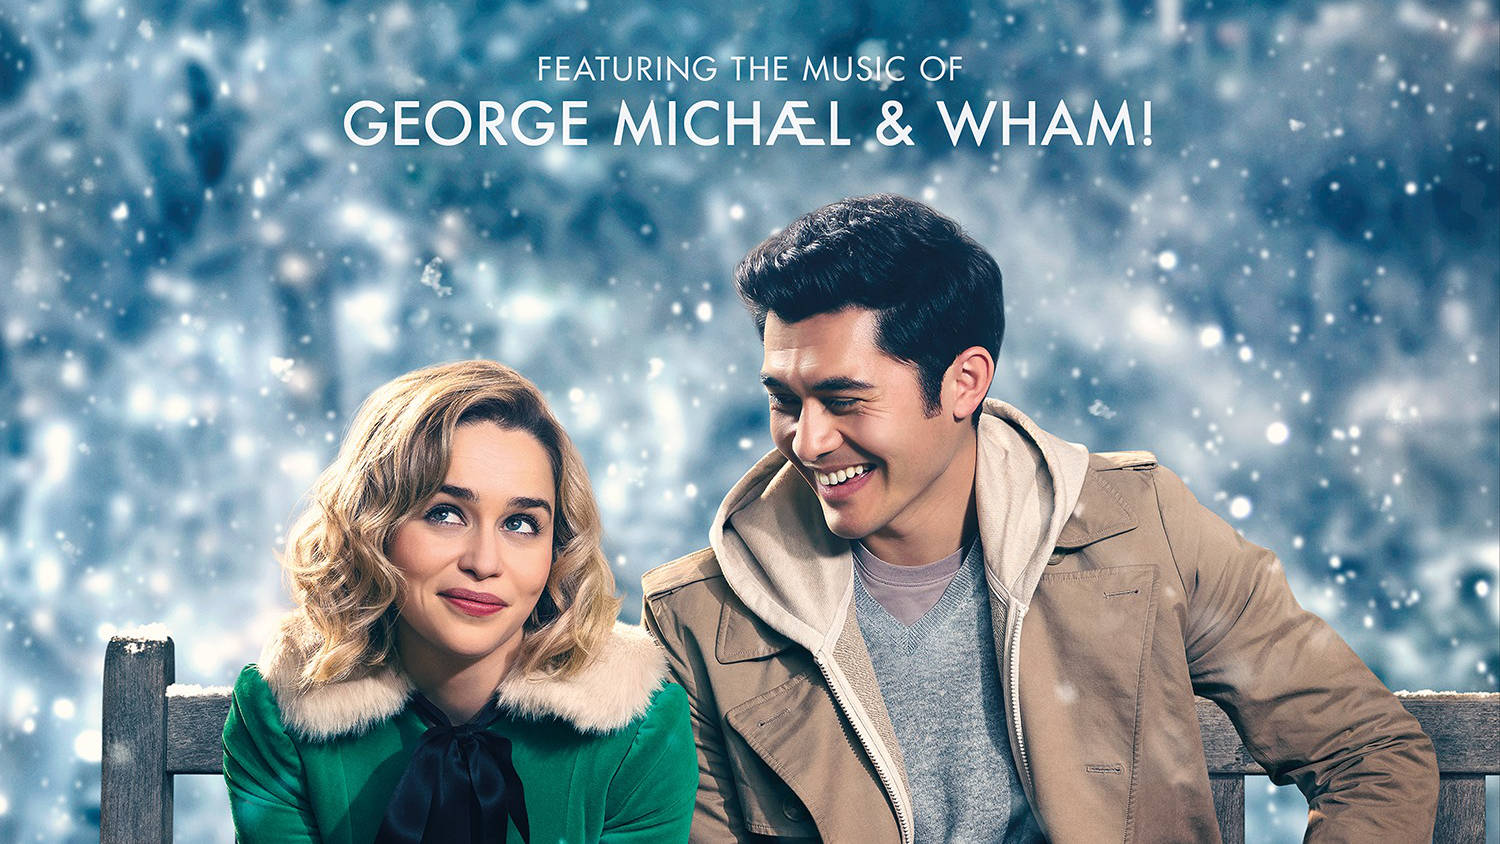 The Last Christmas movie soundtrack is